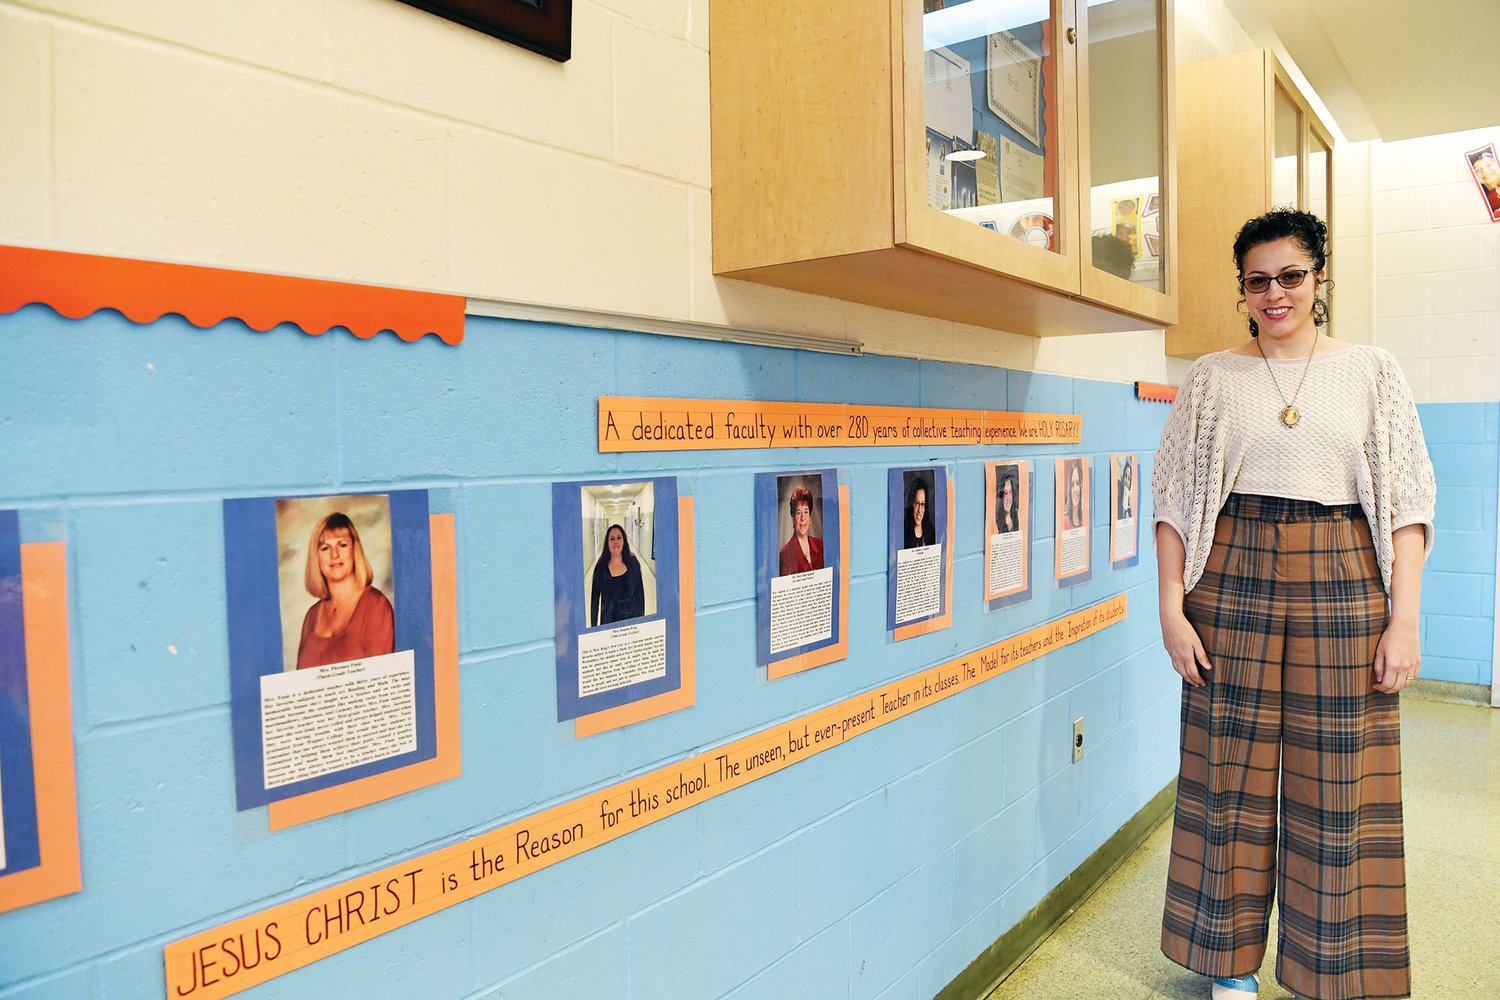 Elizabeth Campbell, principal of Holy Rosary School, shows the Teachers Wall of Fame in the school lobby.